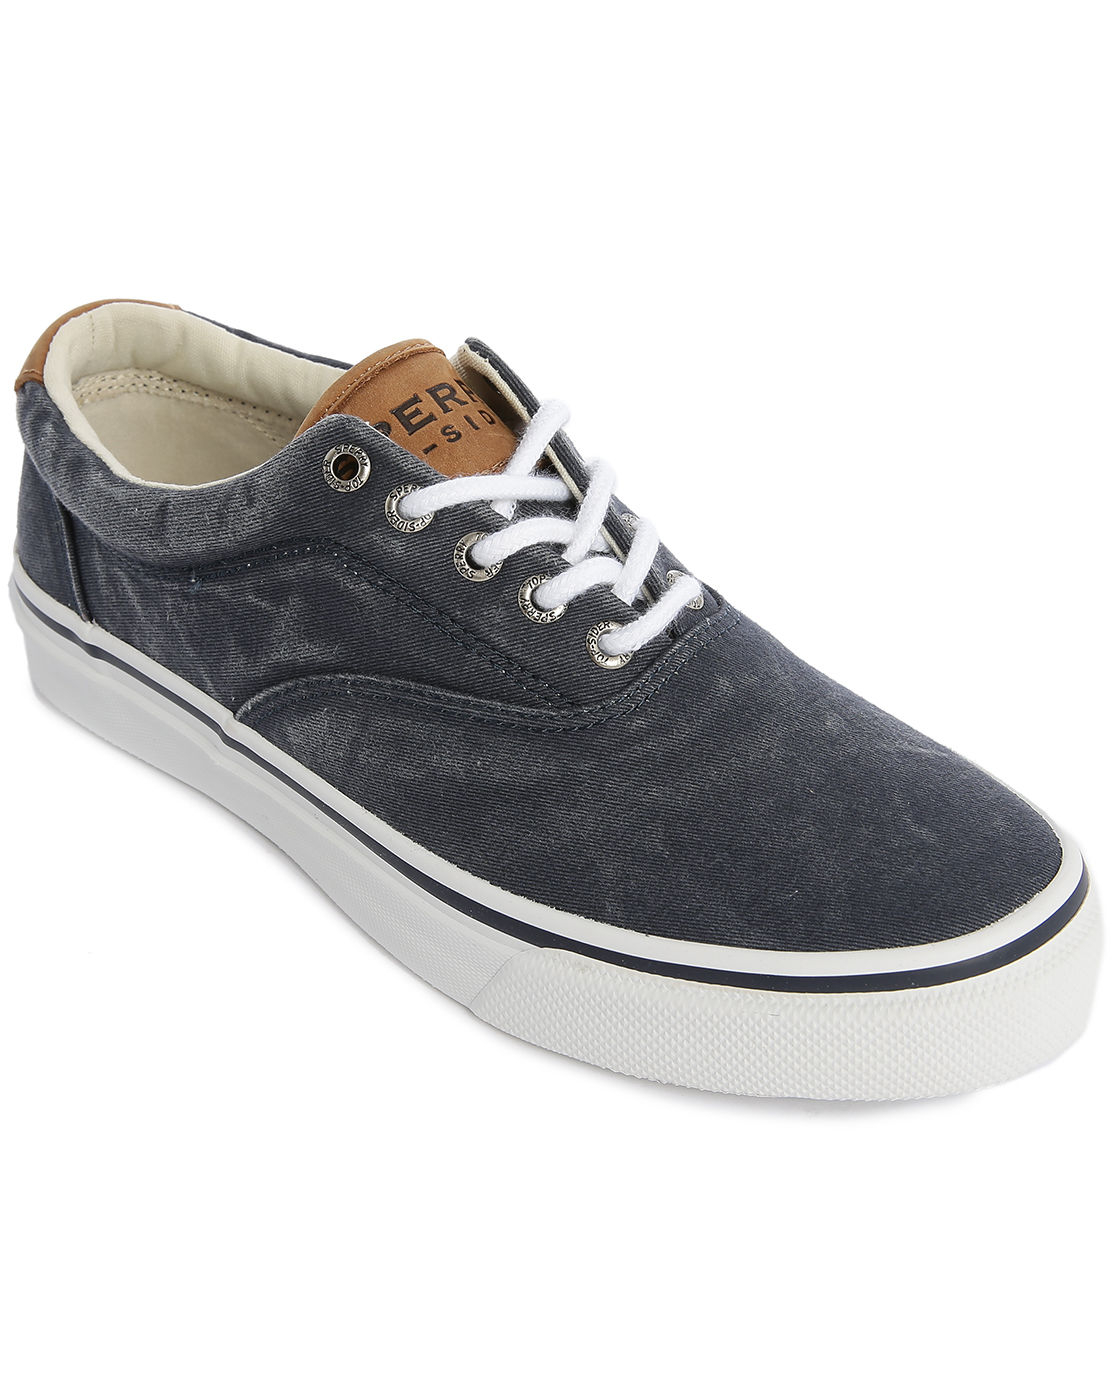 Leather Striper Shoes